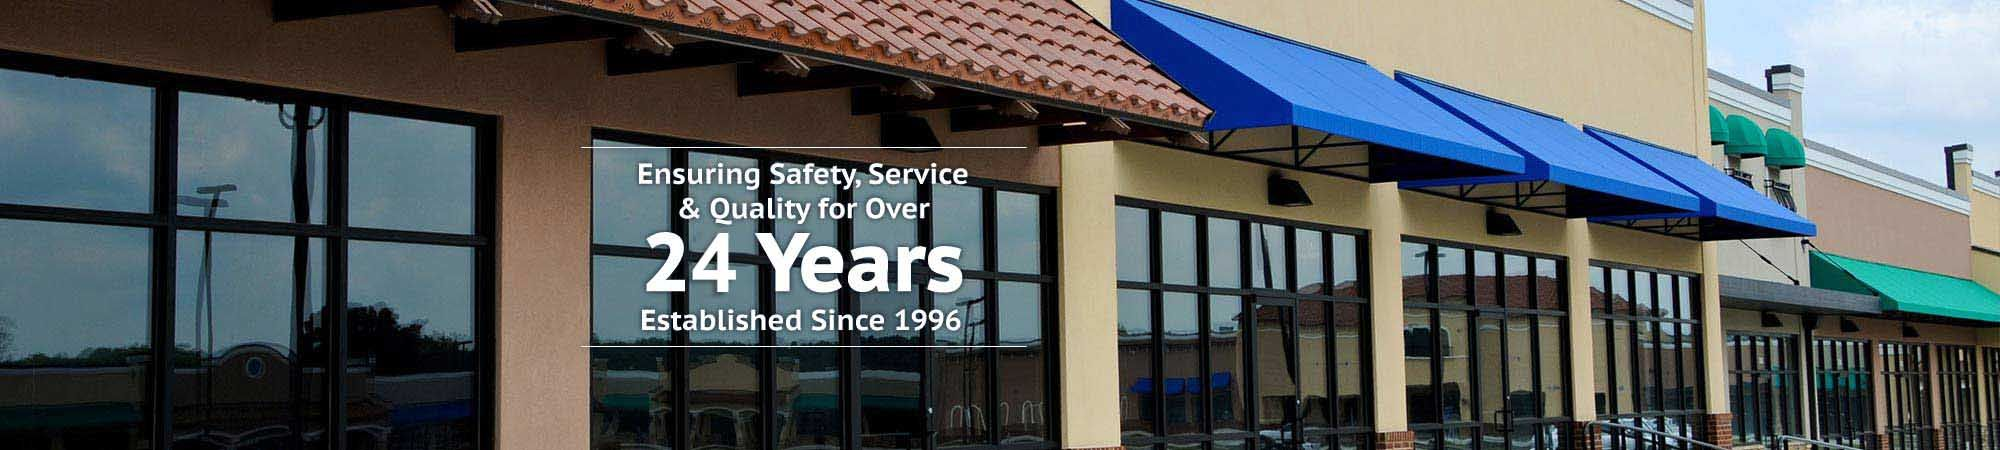 Ensuring Safety, Service & Quality for Over 24 Years Established Since 1996